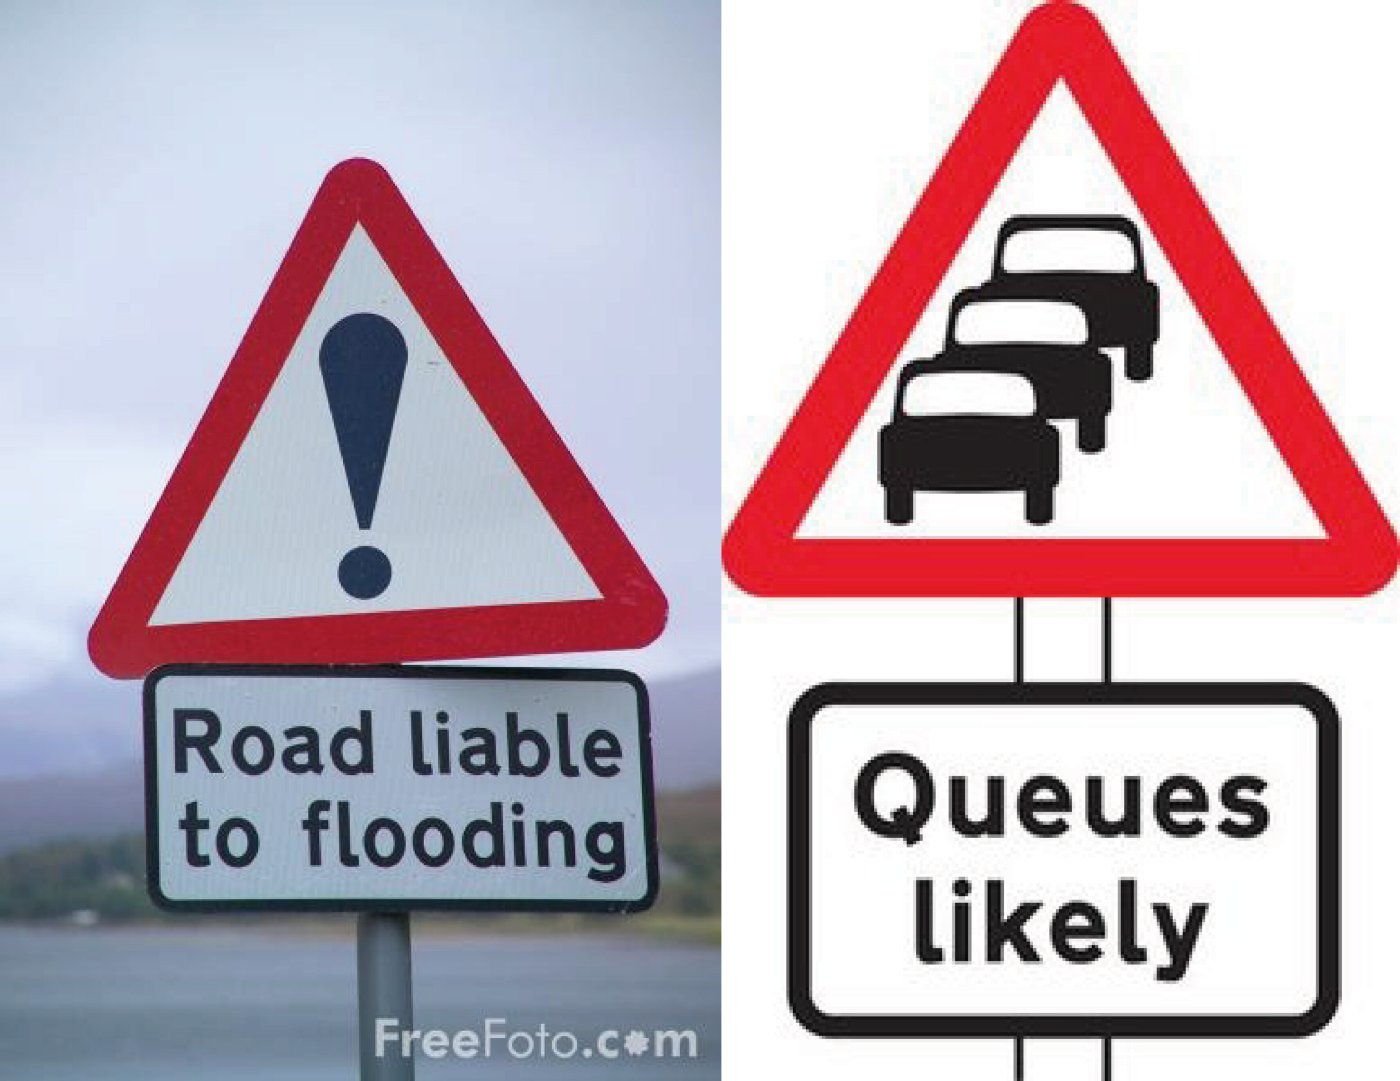 """Roads liable to flooding"", and ""Queues likely"" signs."